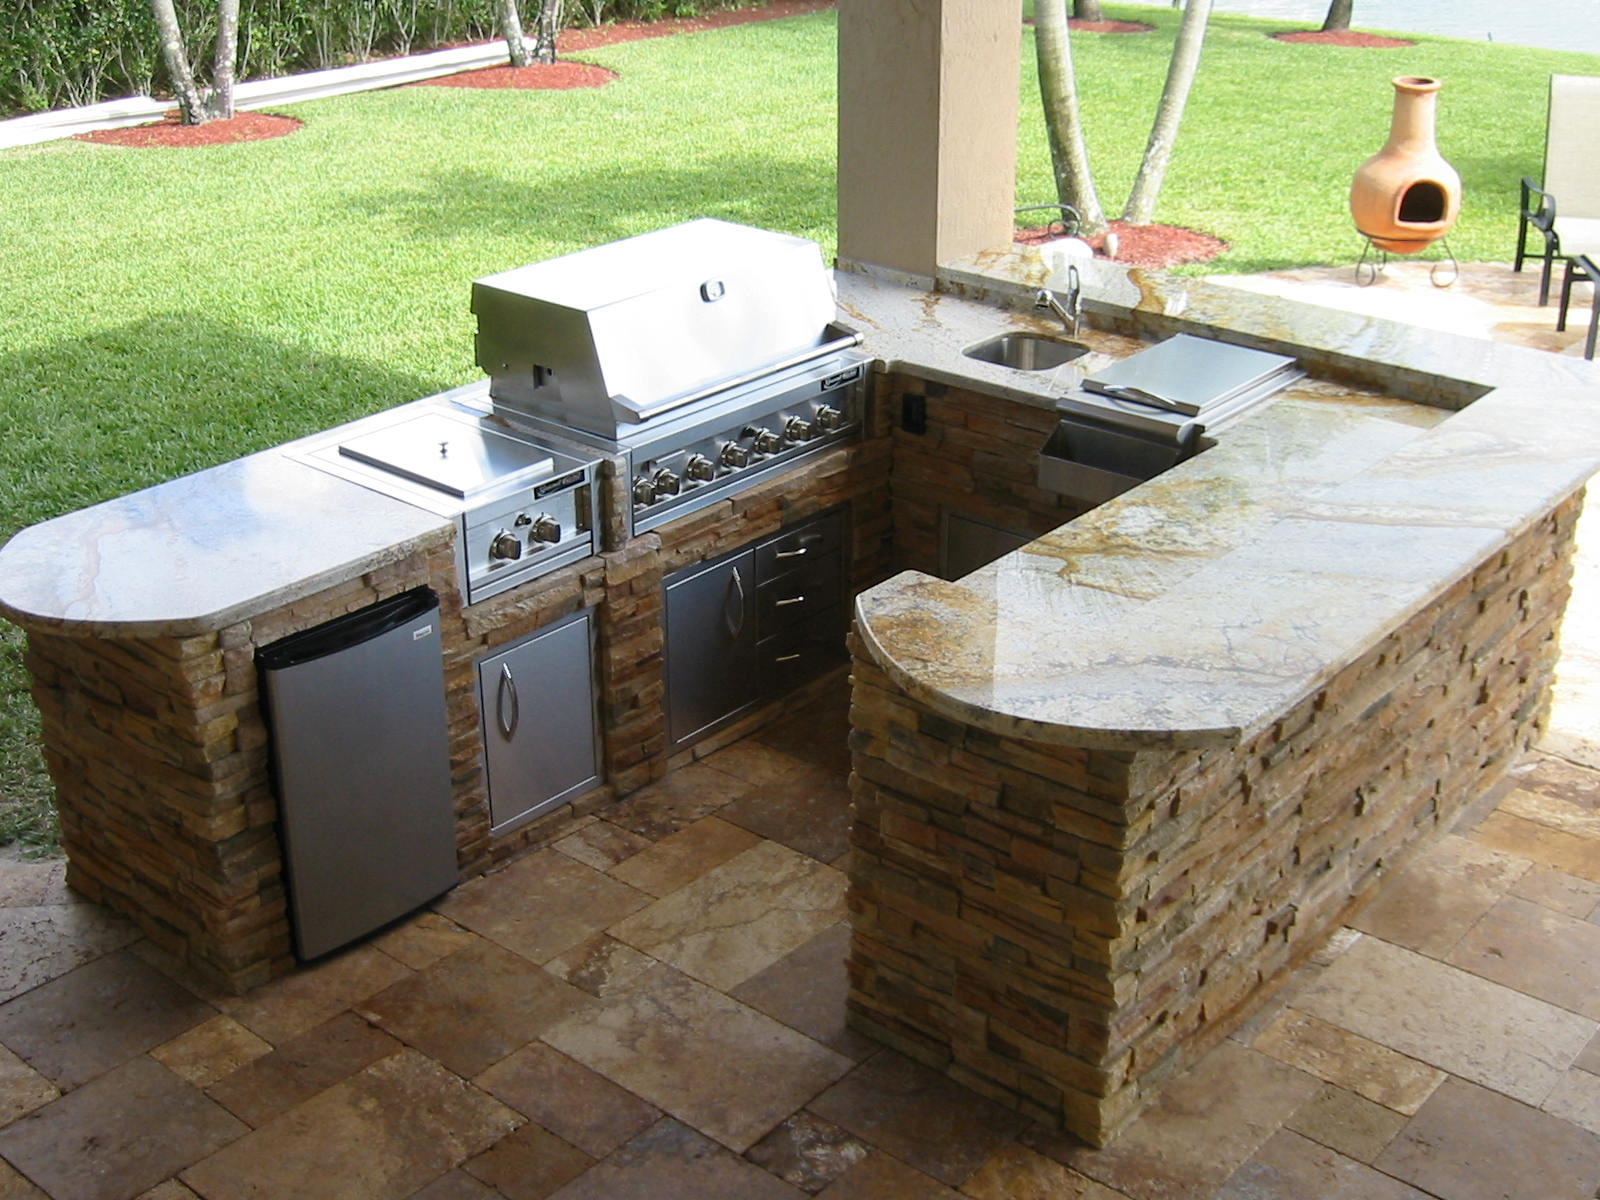 Outdoor kitchen grills l shaped kitchen designs for Outdoor kitchen barbecue grills